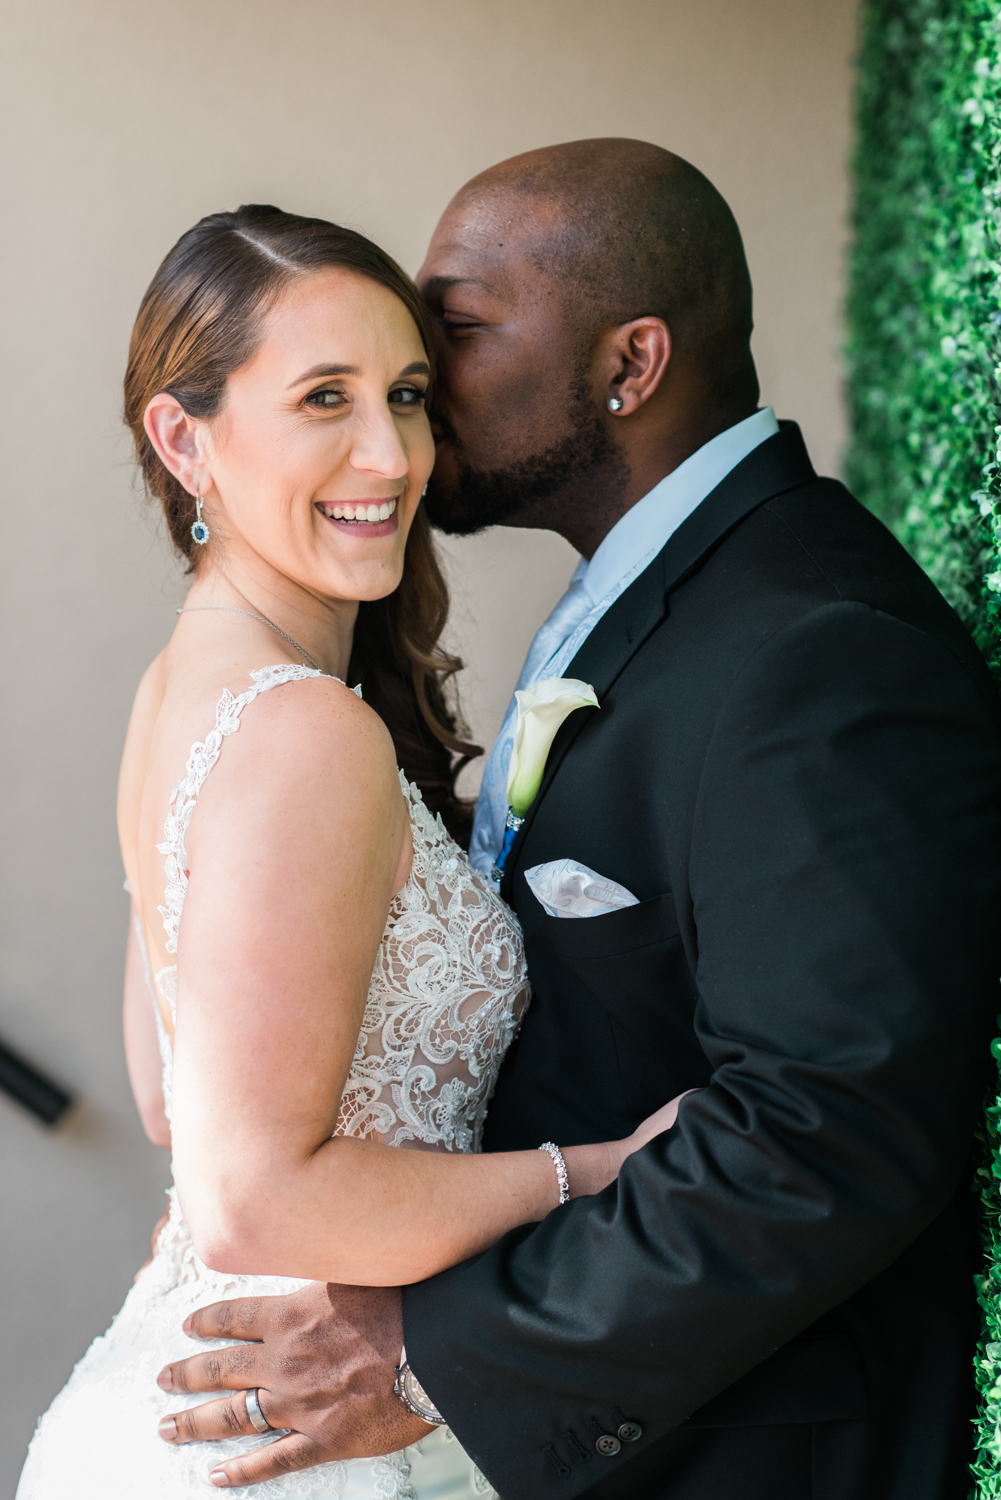 orlando wedding photographer rania marie photo-6.jpg